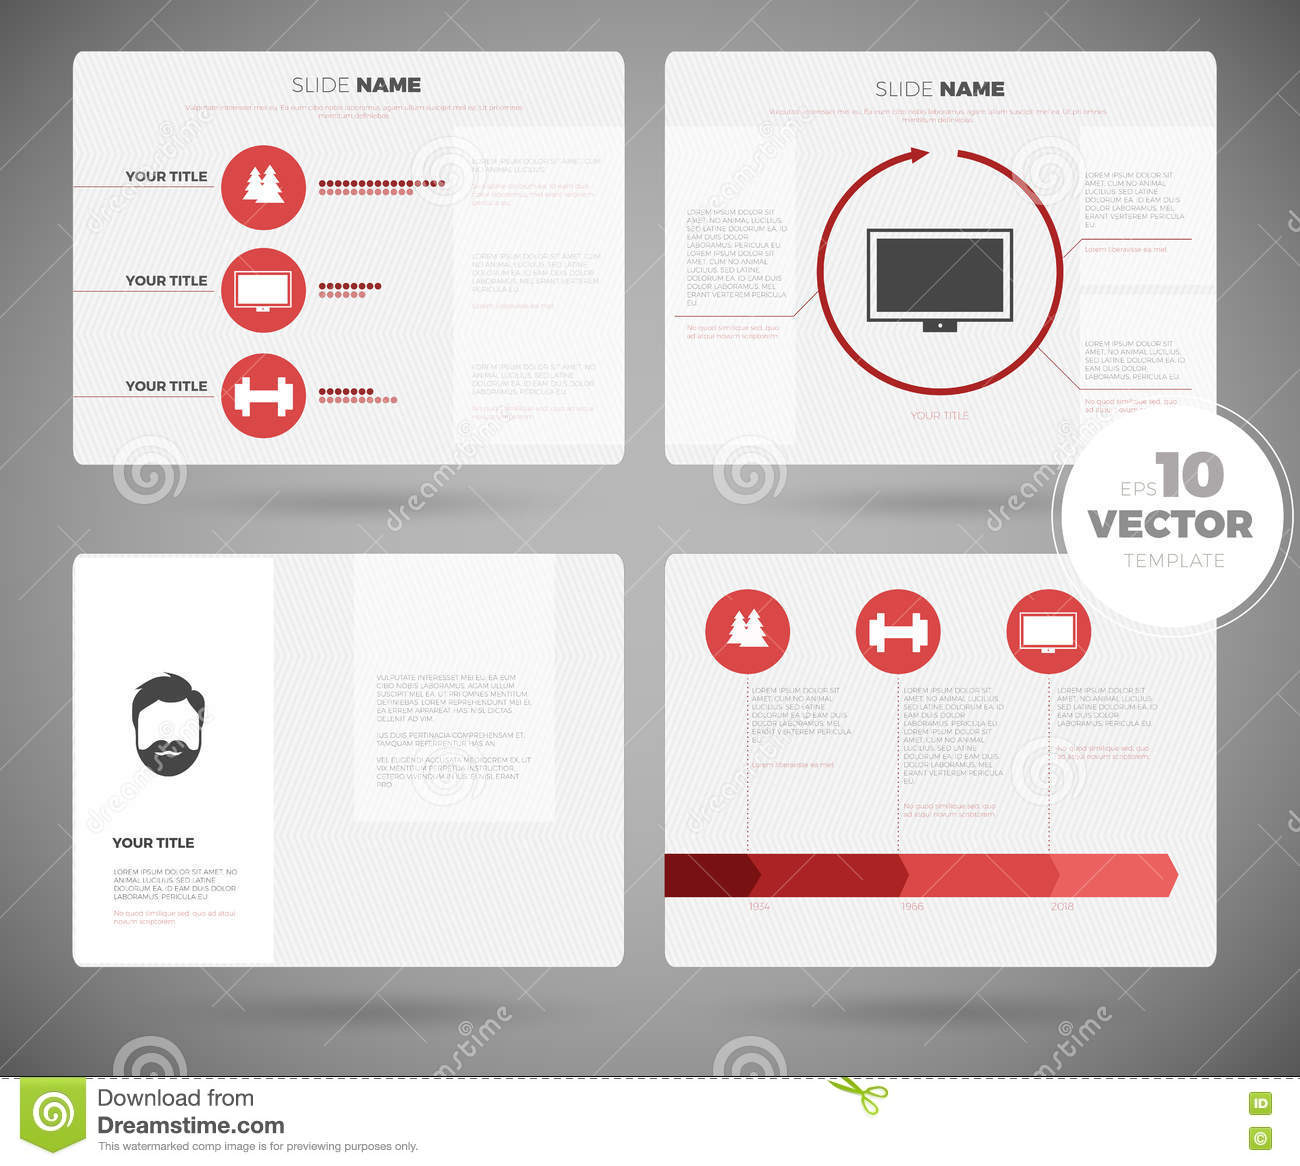 Business presentation template setpowerpoint template design download comp toneelgroepblik